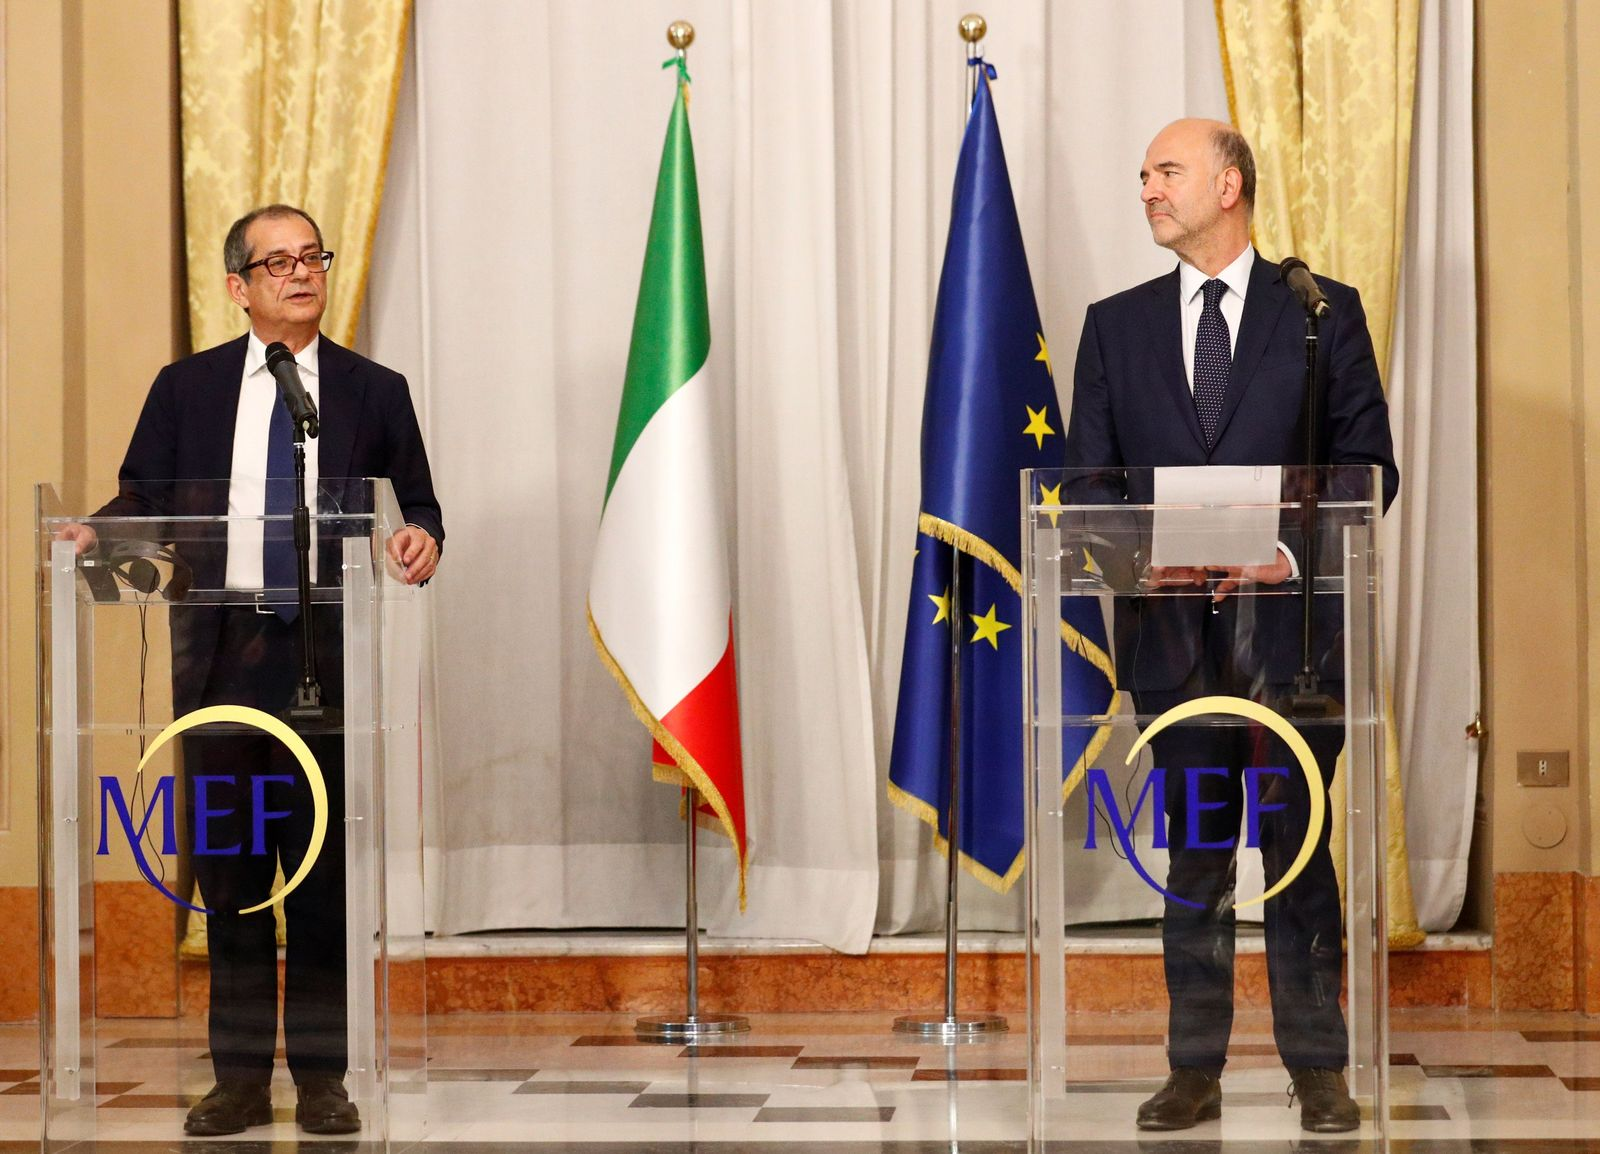 ITALY-BUDGET/MOSCOVICI